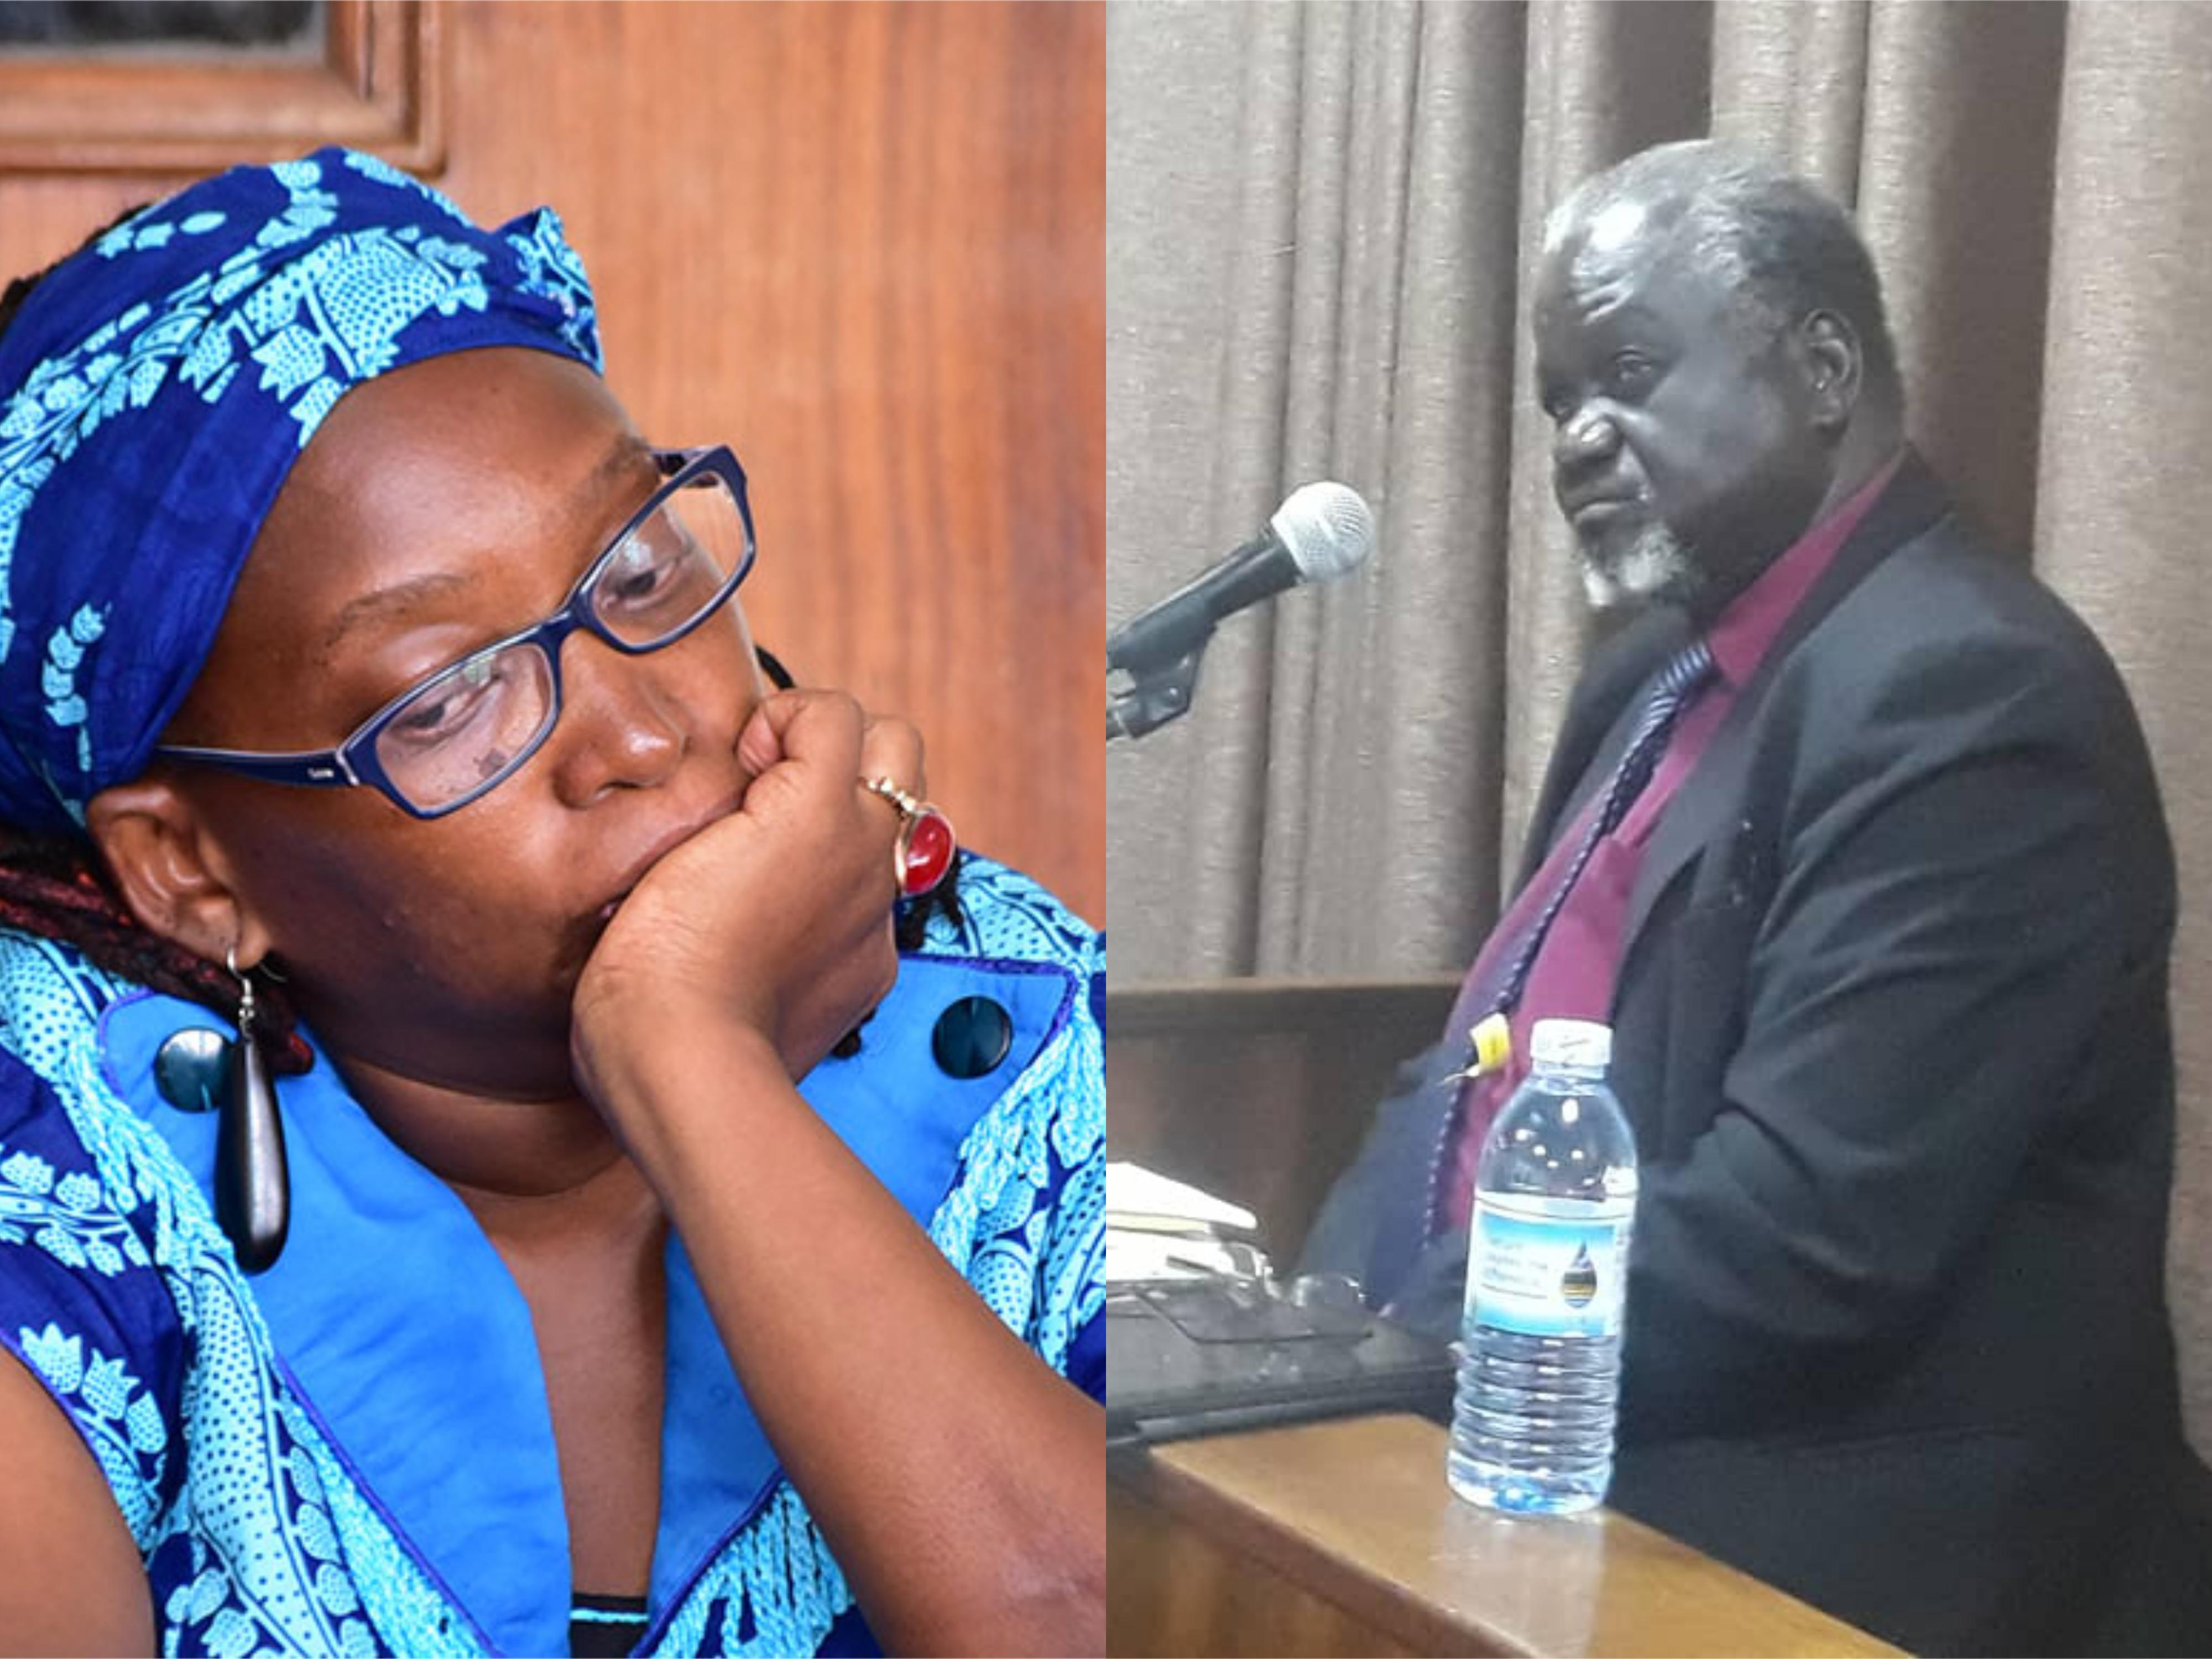 Counsel Opwonya on the stand testifying against Nyanzi